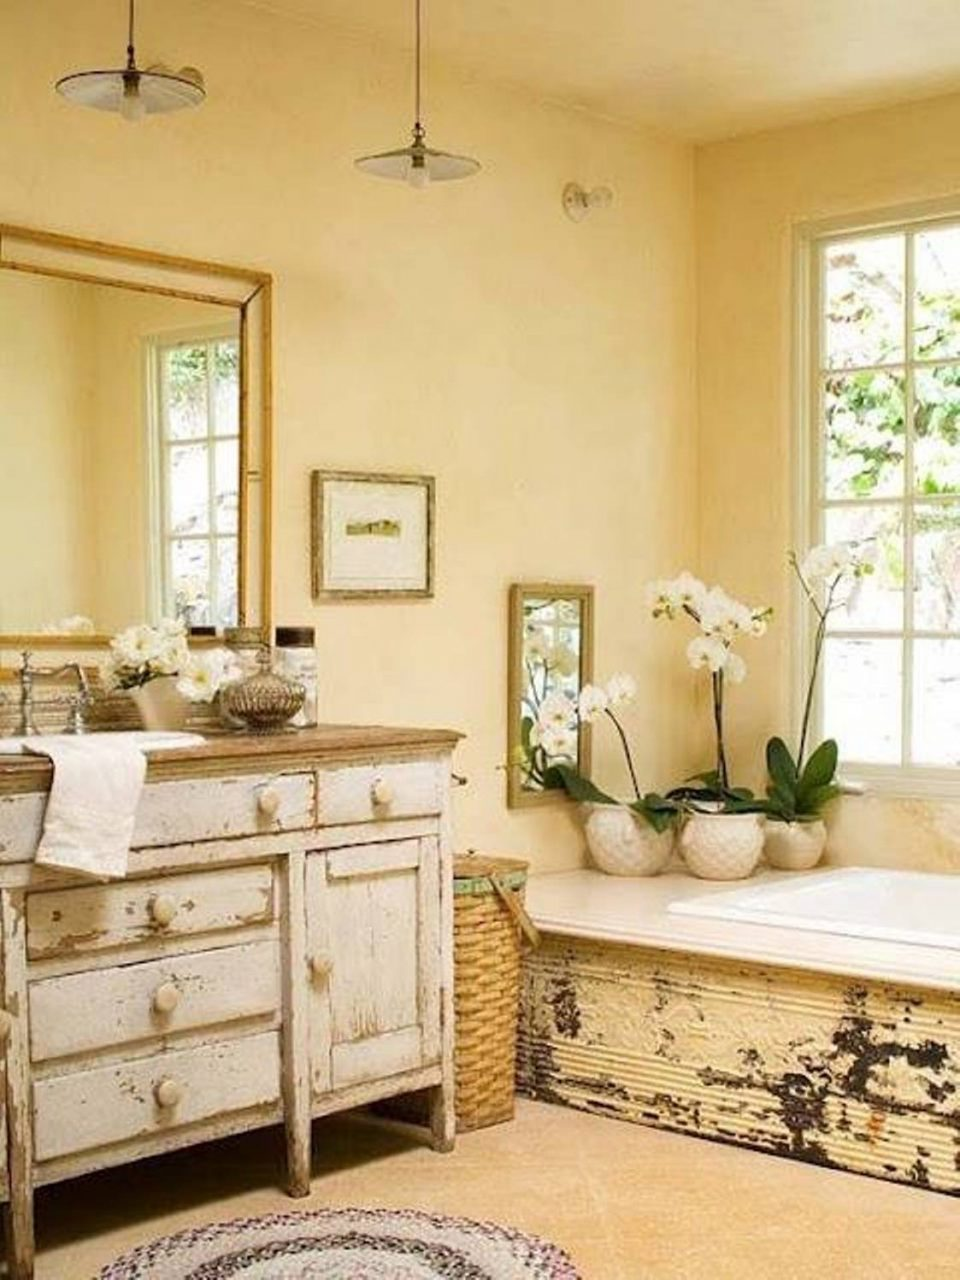 Charming New Country Style Bathroom Ideas Home Design Plan Fornew